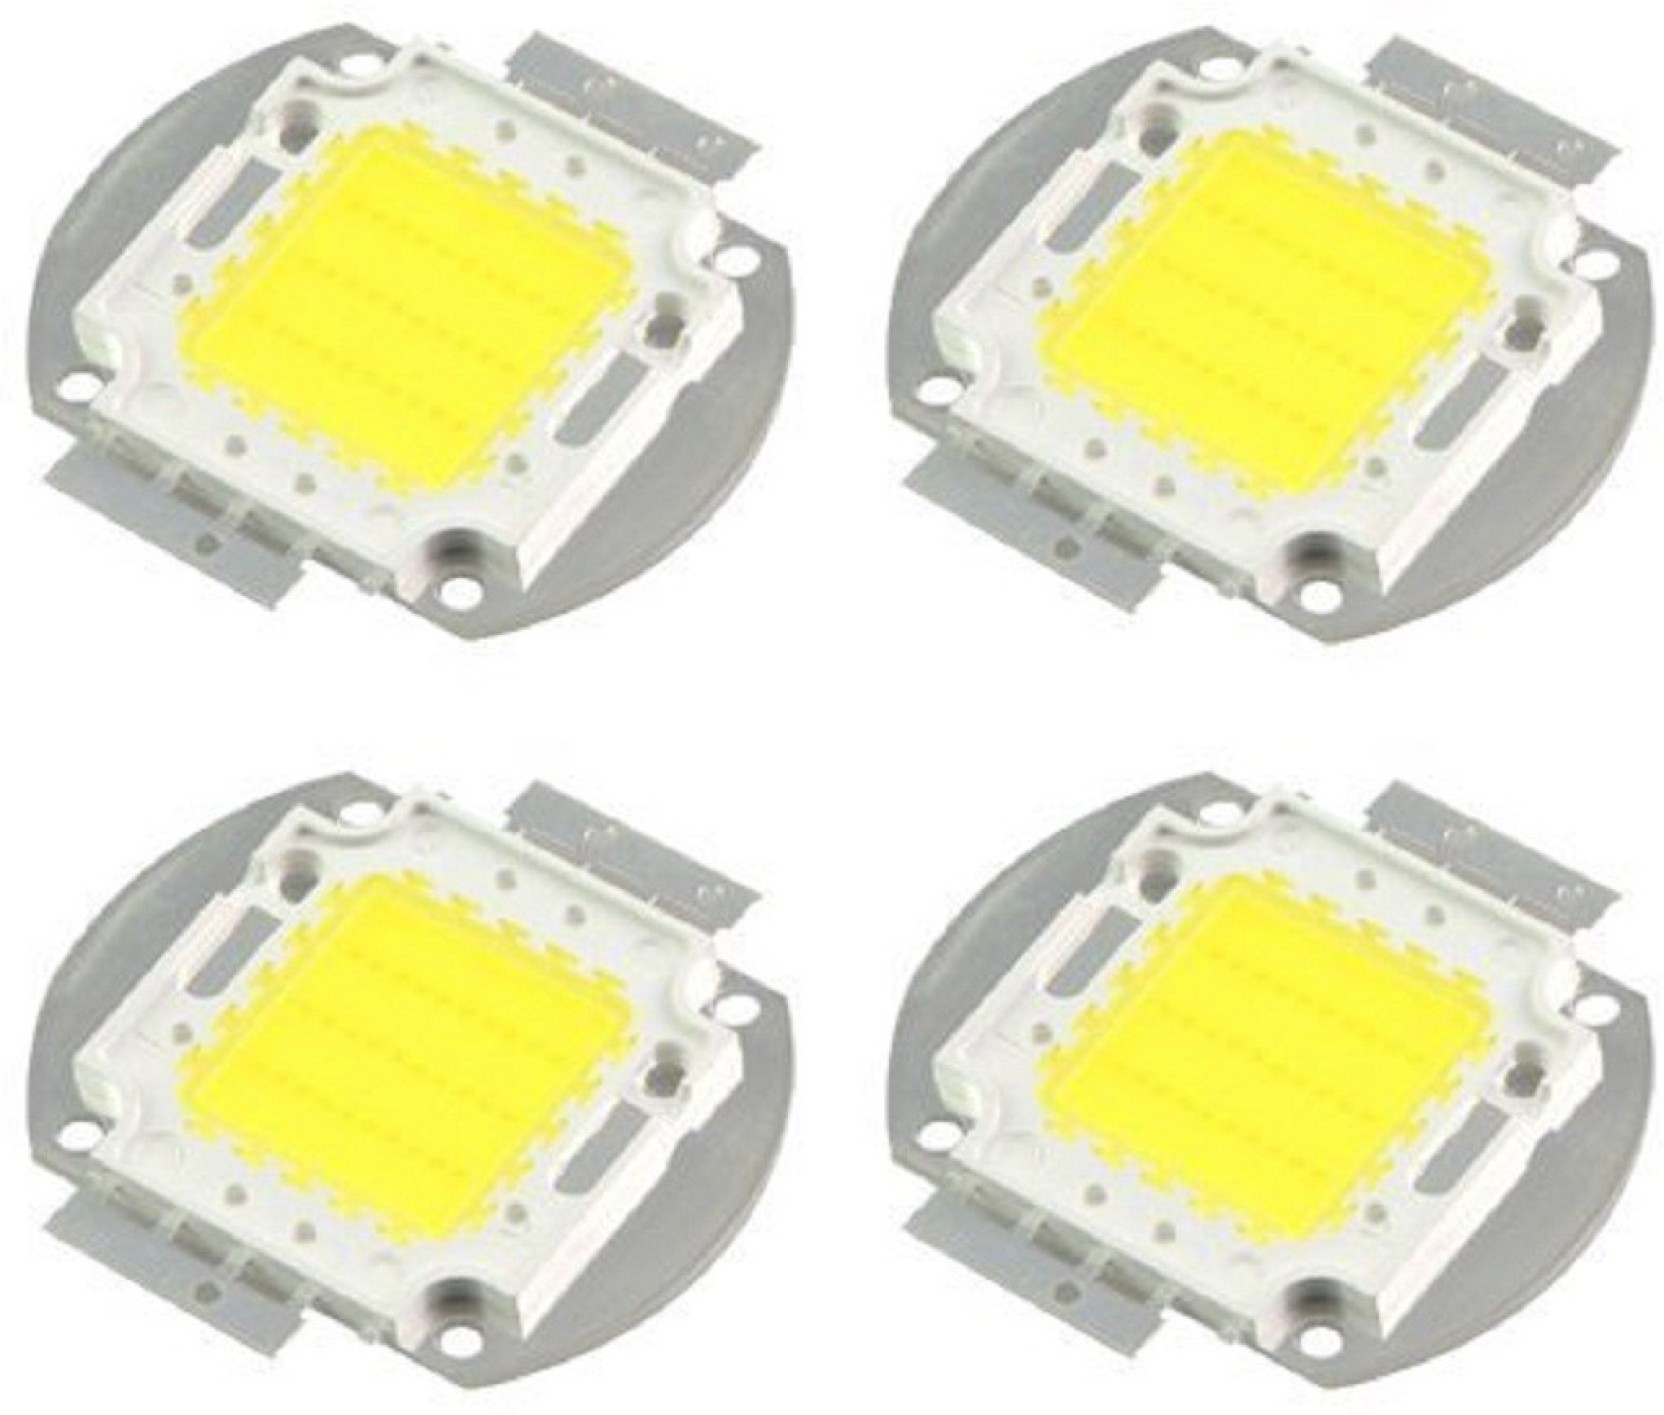 Techwiz 4 Pics 20w White High Power Led Smd Bead Chips Bulb Light Home Hobby Police Car Lights With Leds Add To Cart